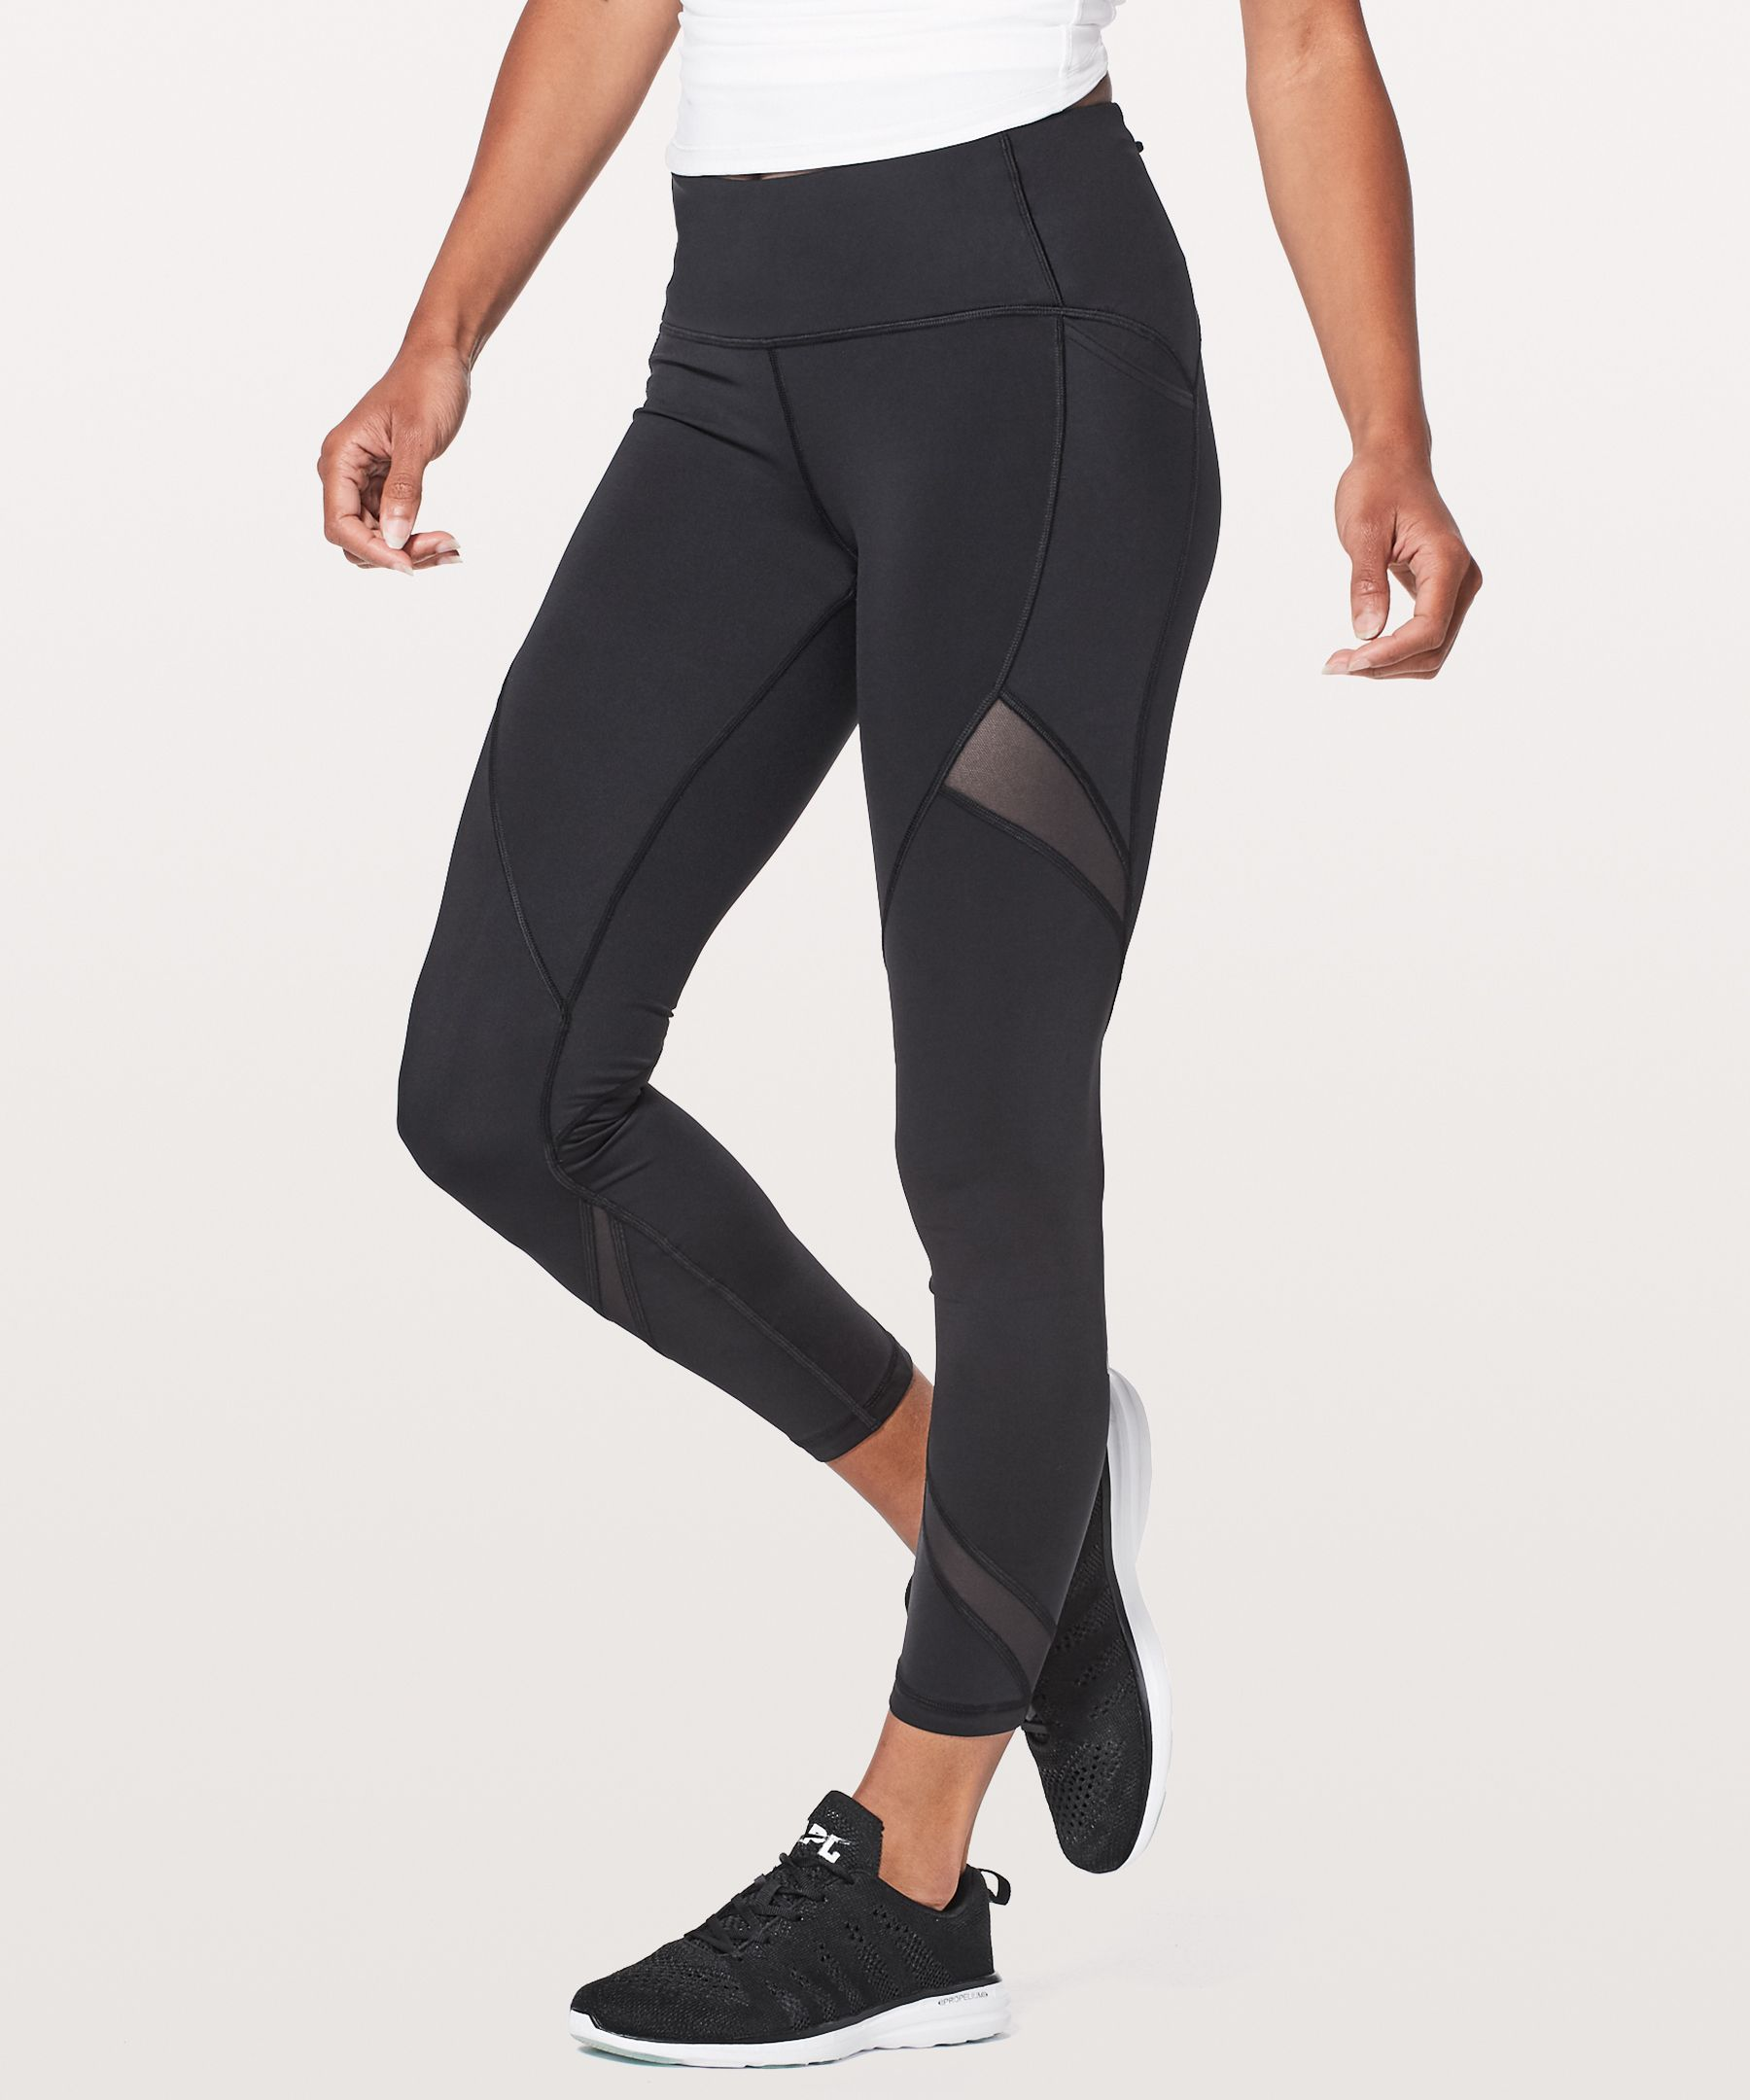 "On Pace Tight 7/8 25""New by Lululemon"